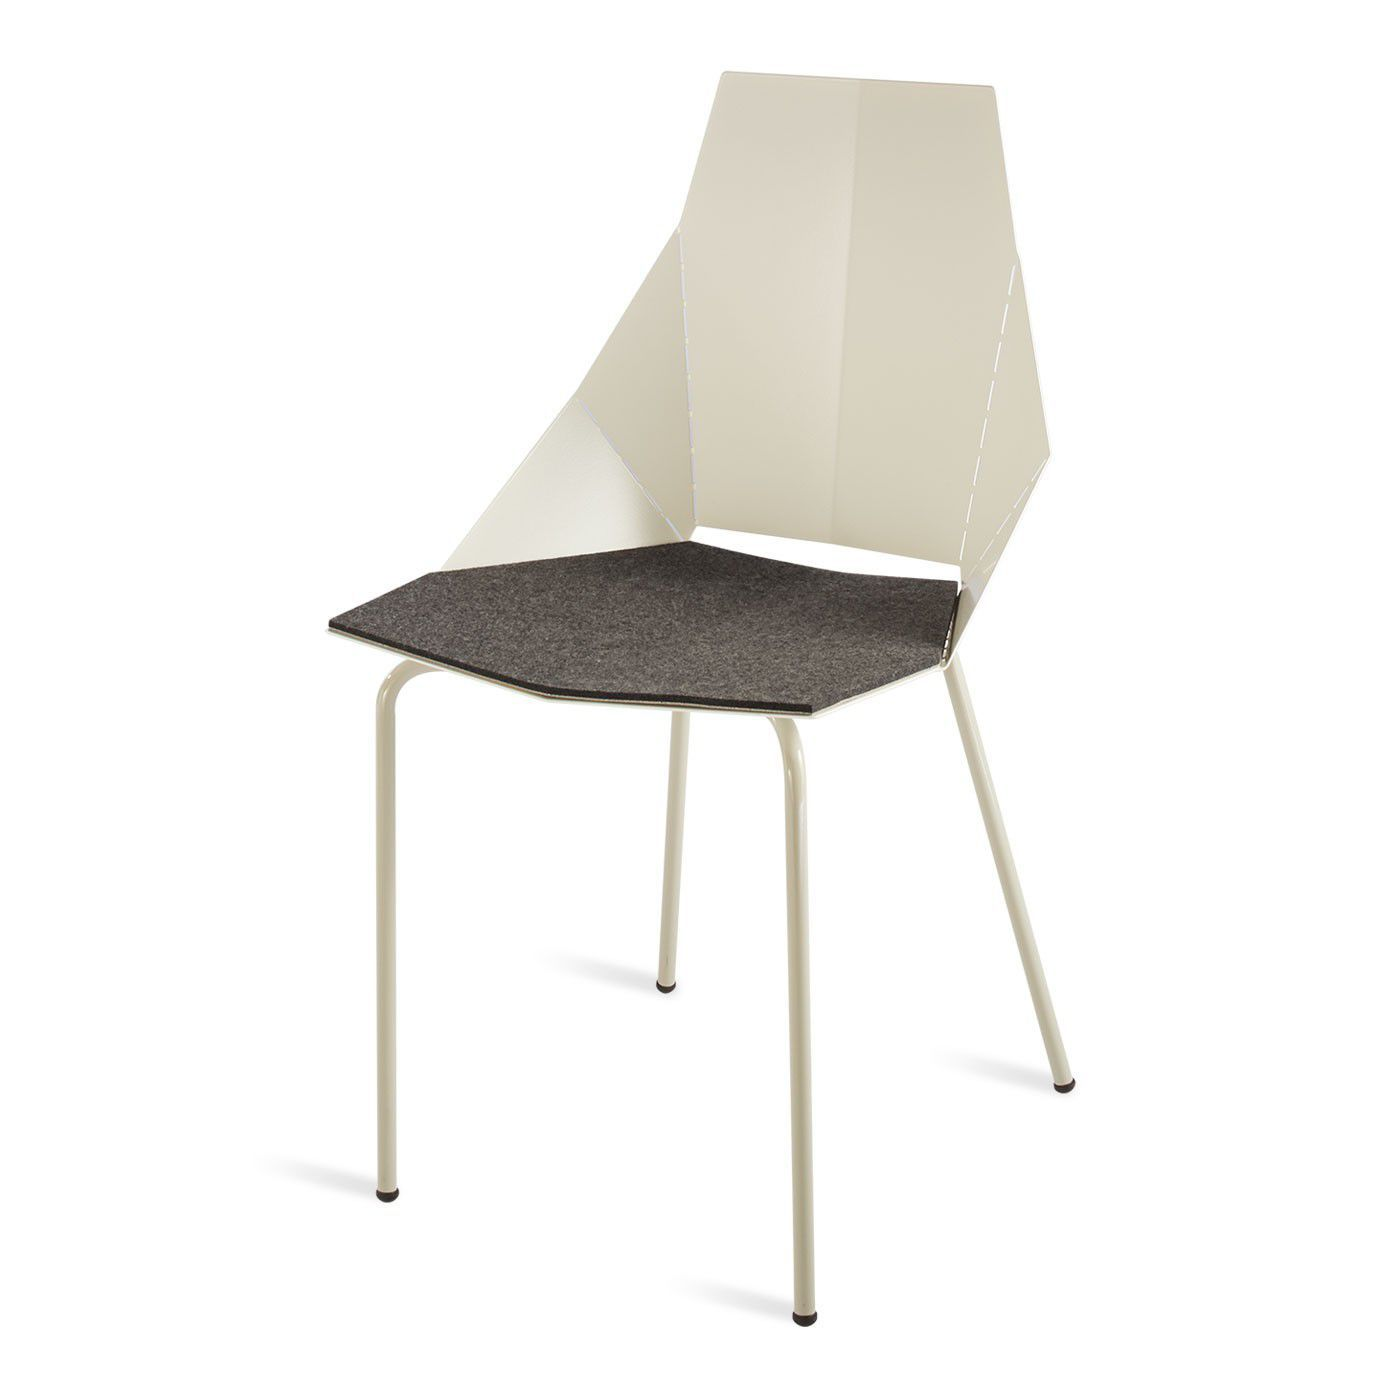 Contemporary chair leather copper powder coated steel REAL